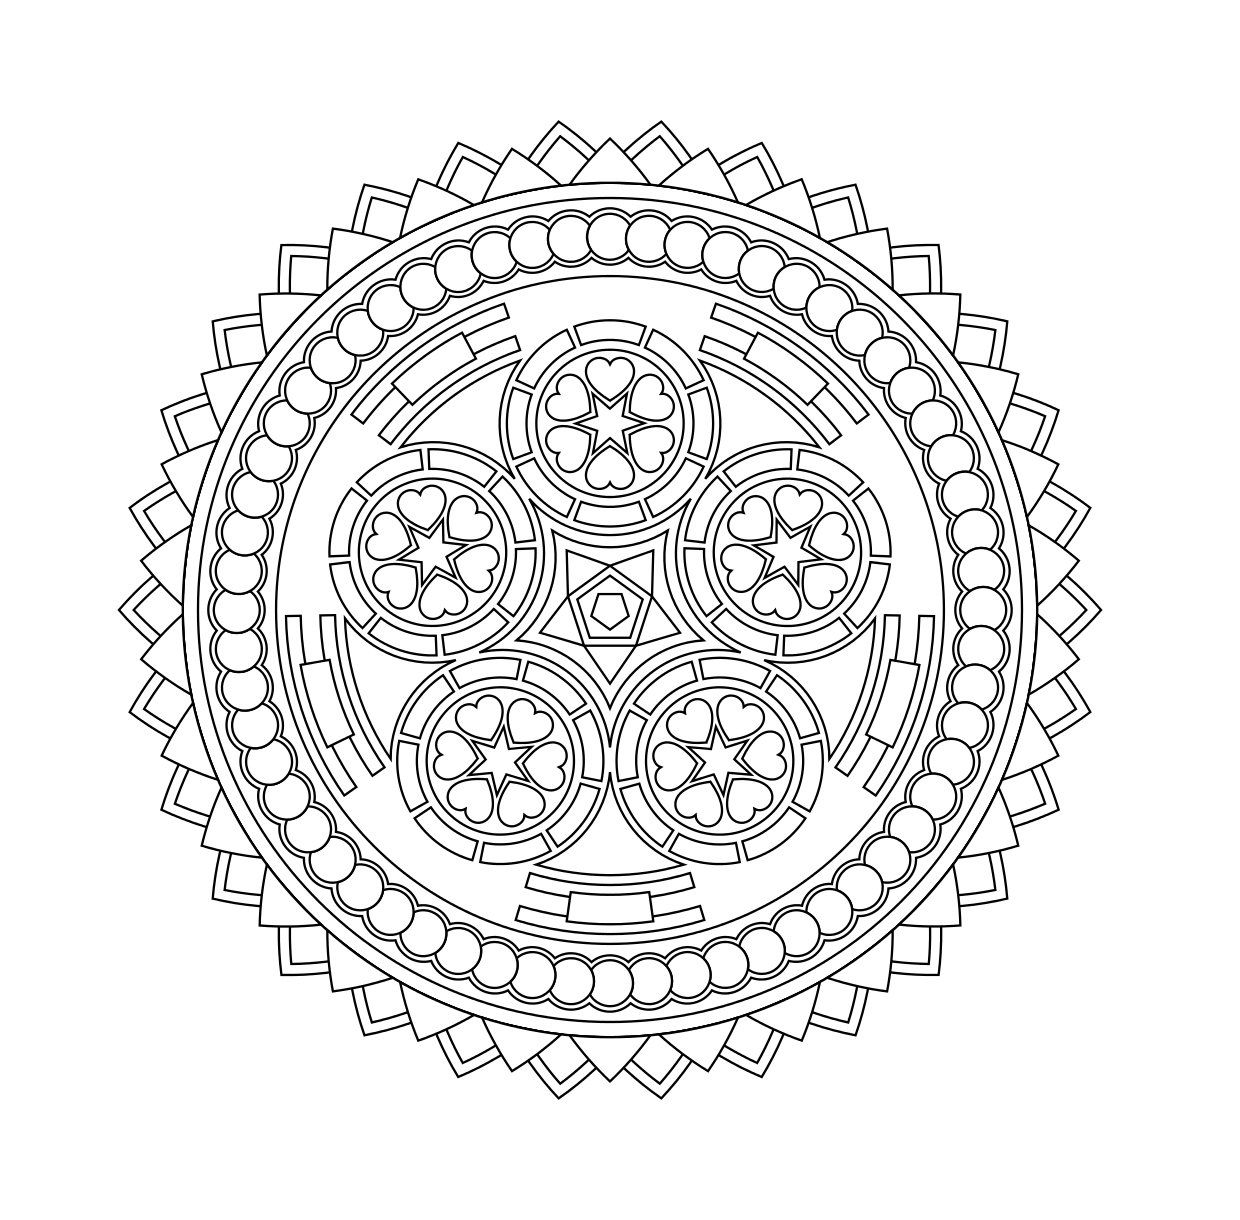 Coloring pages for stress relief - 29 Printable Mandala Abstract Colouring Pages For Meditation Stress Relief